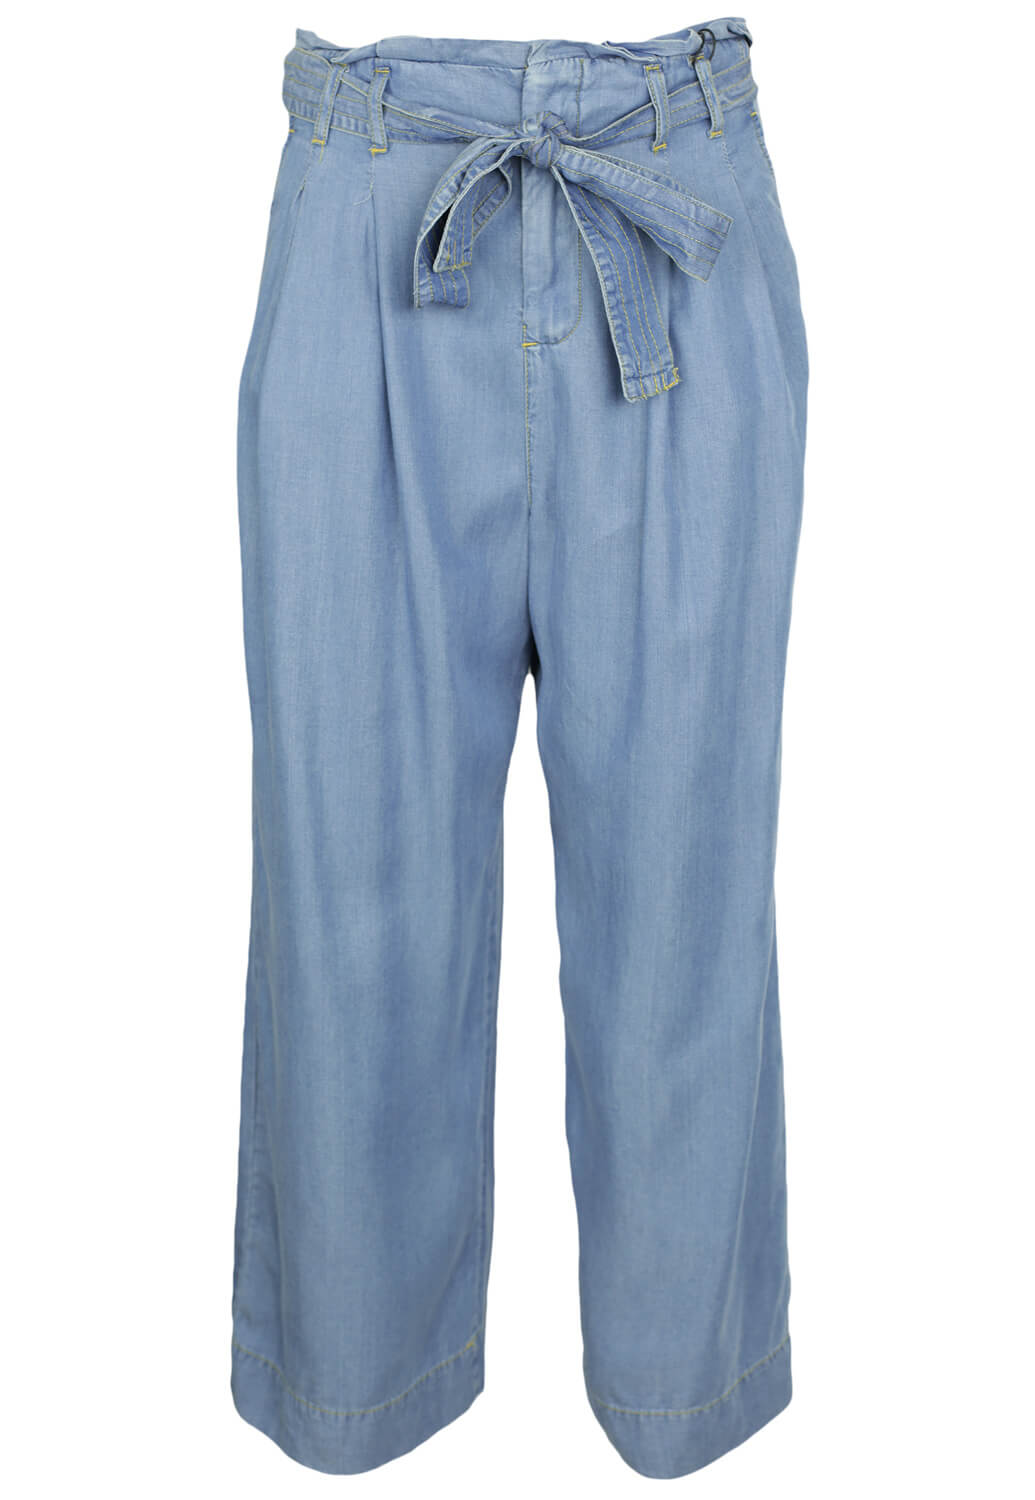 Pantaloni ZARA Elisa Light Blue